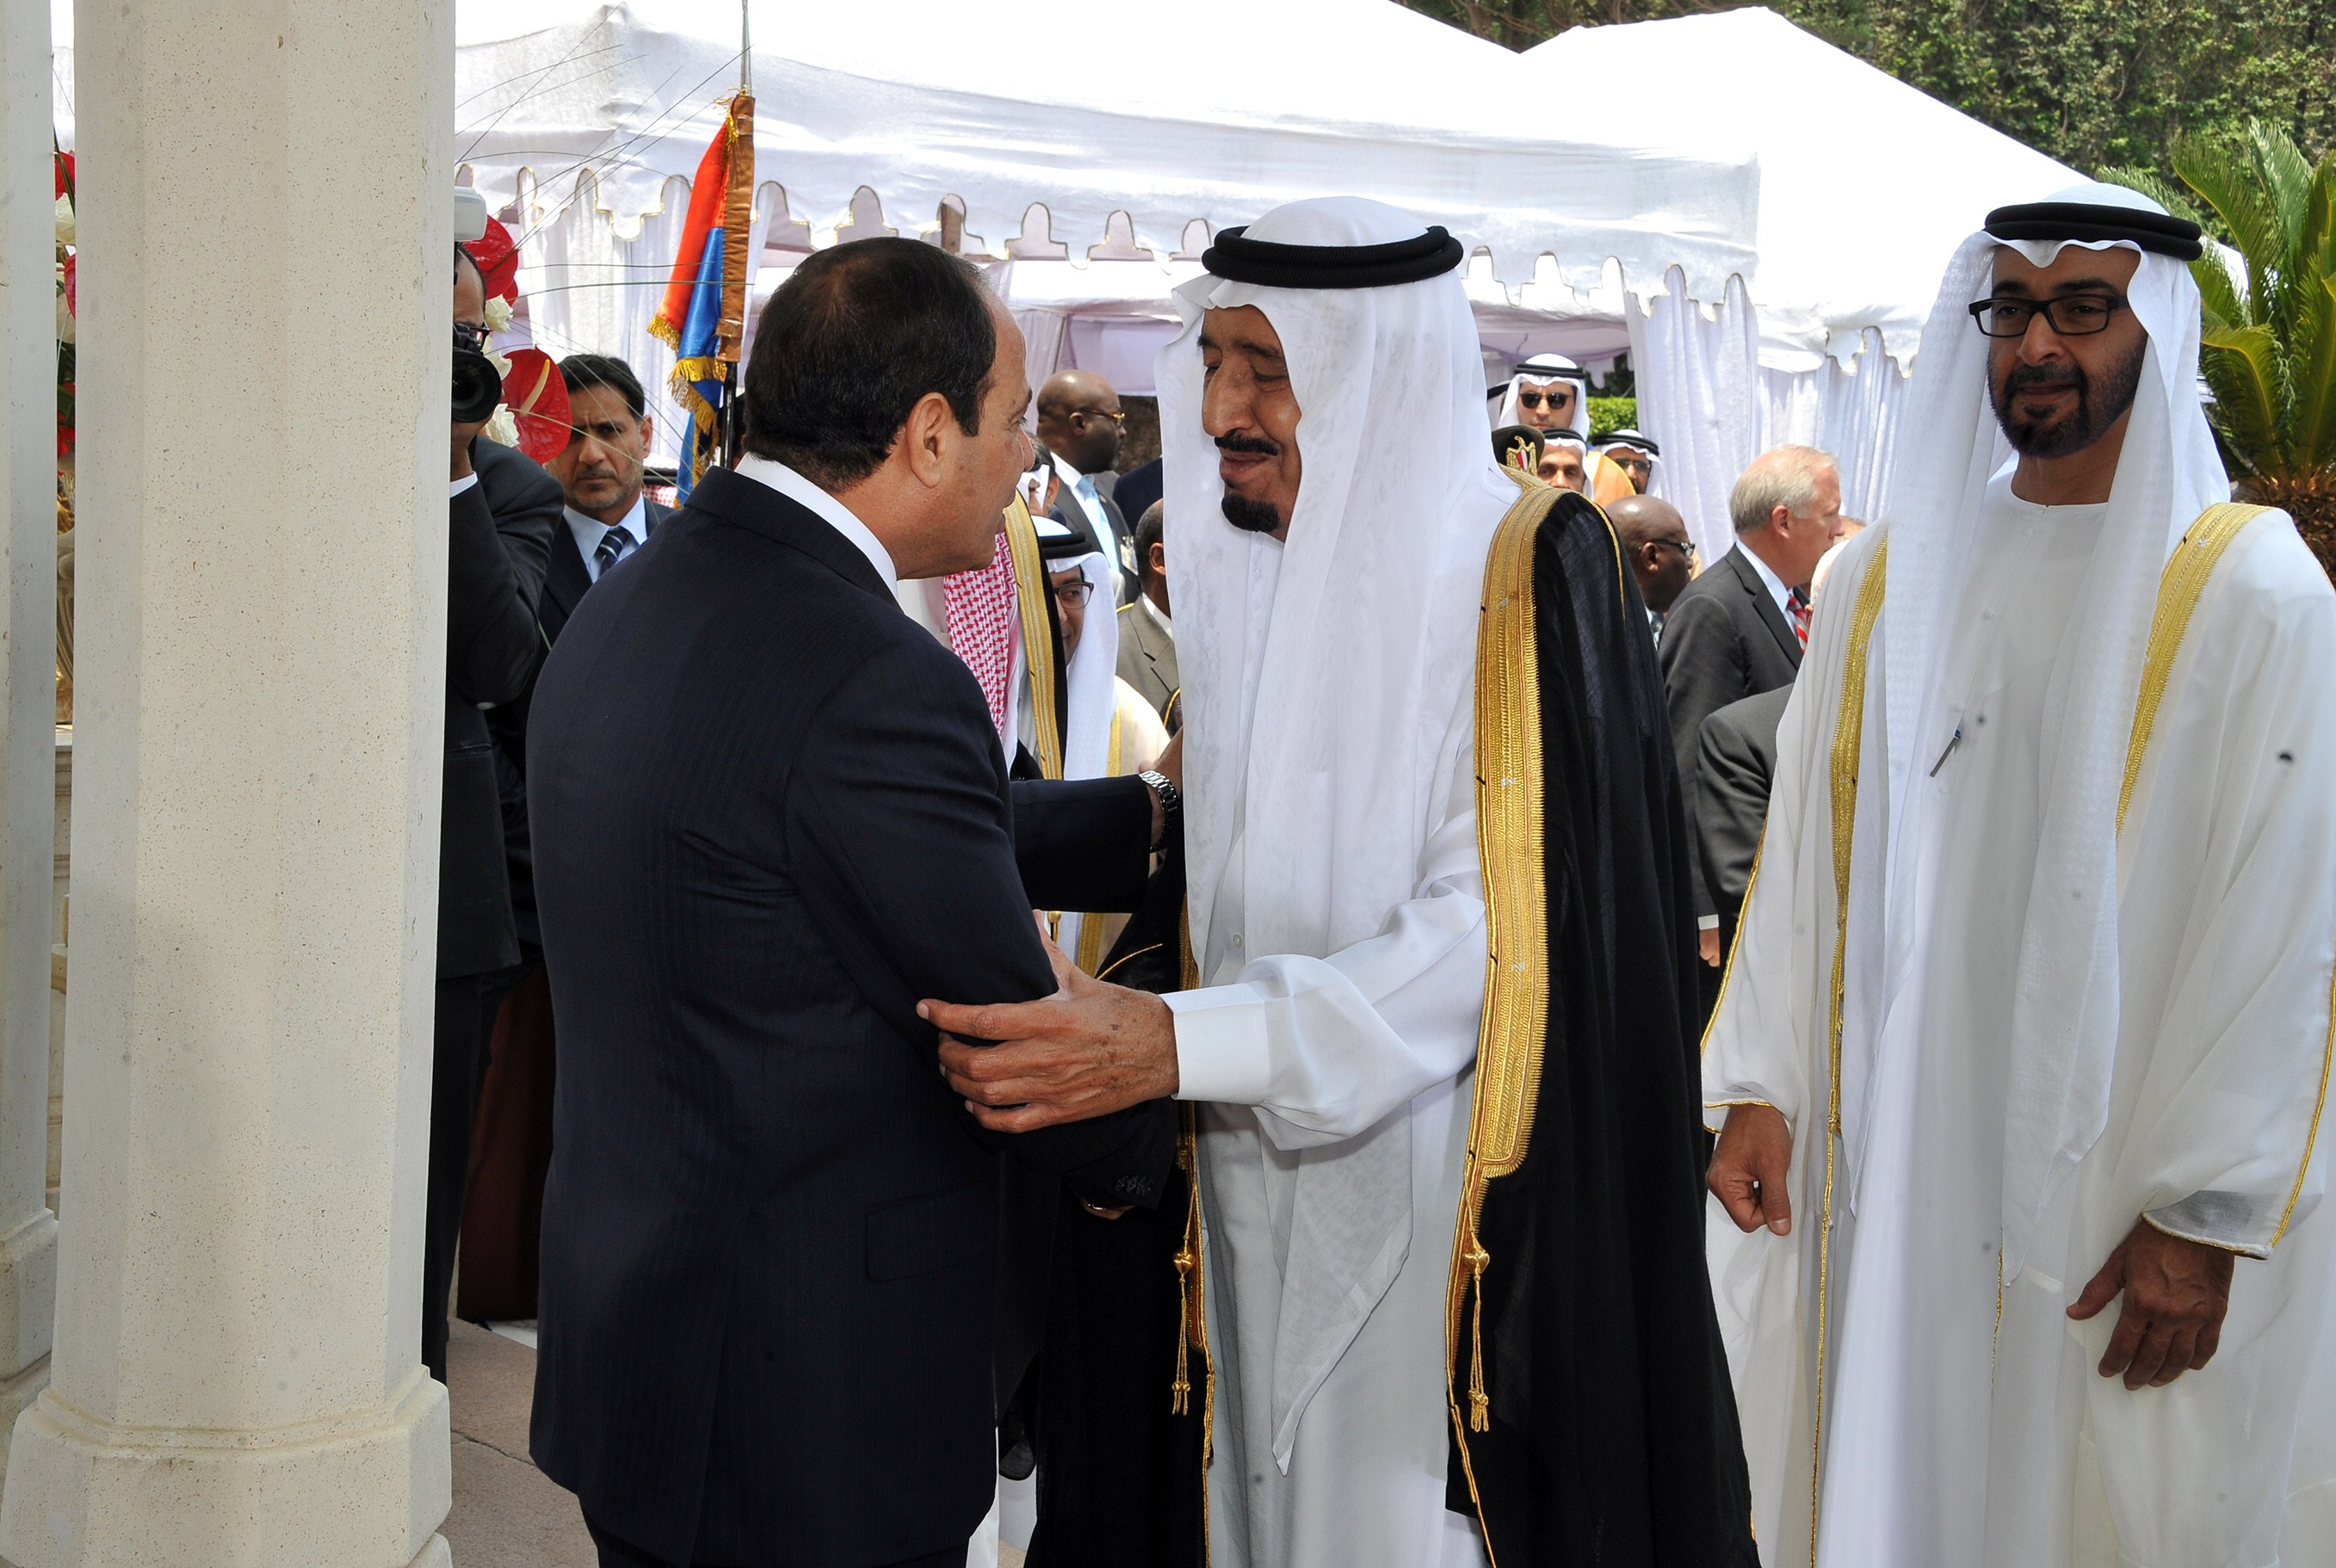 A handout picture made available on June 8, 2014 by the Egyptian presidency shows President elect Abdel Fattah al-Sisi (L) receiving congratulations from Saudi Arabia's Crown Prince Salman bin Abdul Aziz (C) and Crown Prince of Abu Dhabi Mohammed bin Zayed al-Nahayan (R) following his assumption of power in Cairo. Sisi was sworn in as Egypt's president, formalising his de facto rule since he deposed the elected Islamist last year and crushed his supporters.  (AFP PHOTO / HO / EGYPTIAN PRESIDENCY)